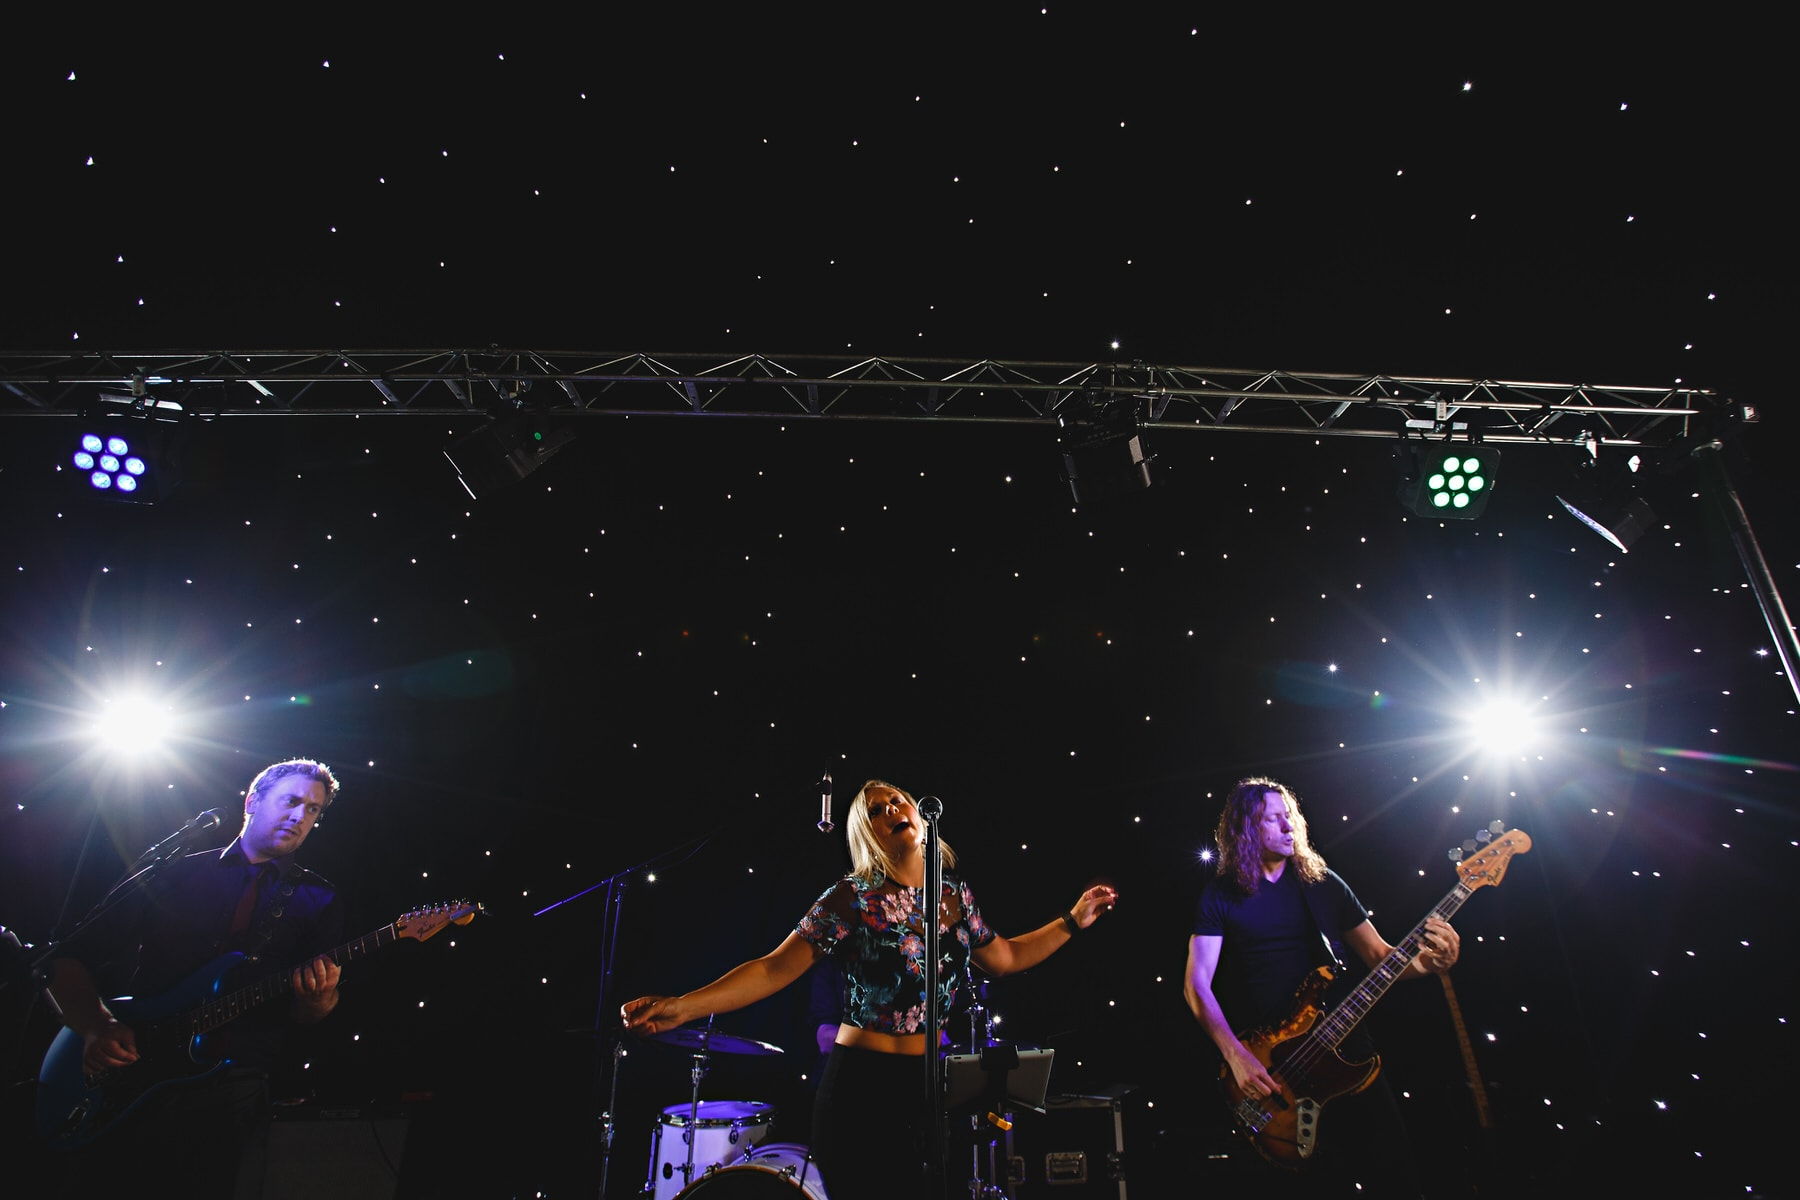 the bands at Osmaston Park in Derbyshire